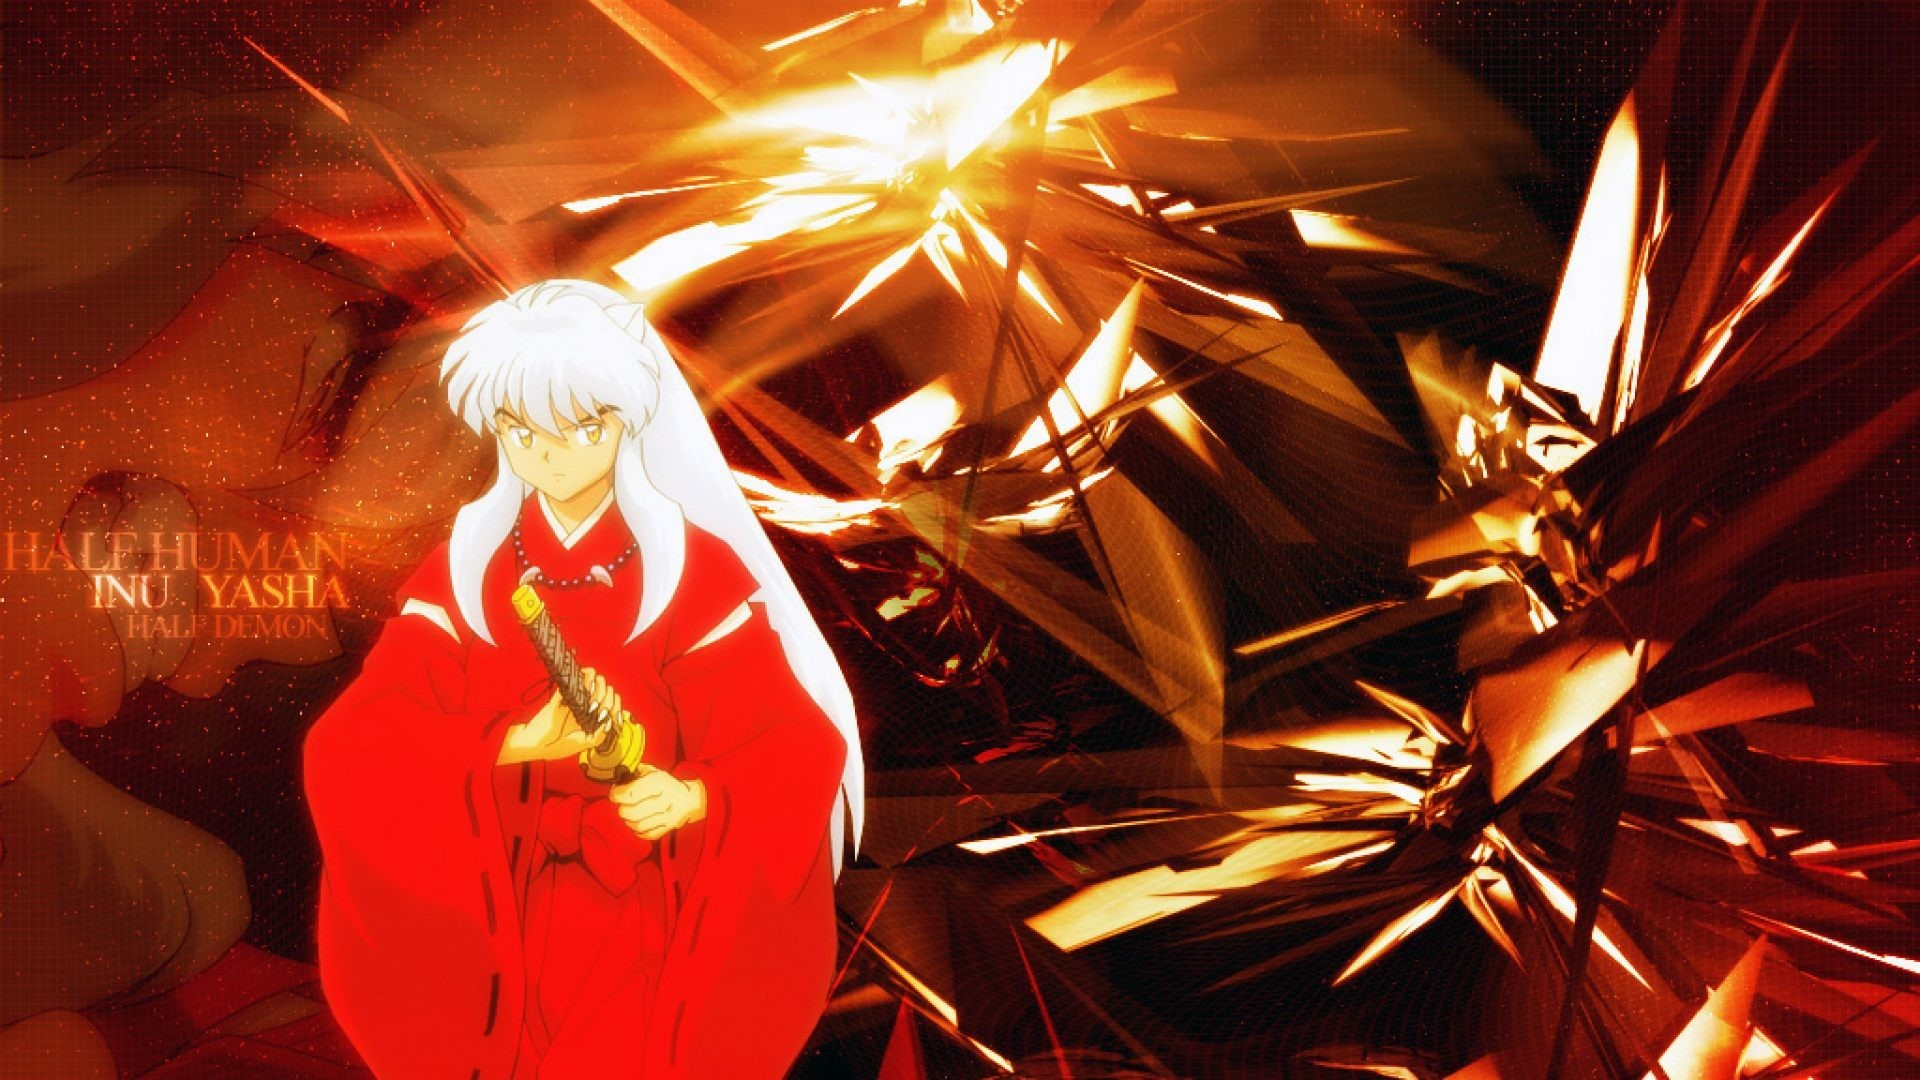 1920x1080 inuyasha free hd widescreen wallpapers windows wallpapers hd download free  amazing cool windows 10 tablet 1920×1080 Wallpaper HD